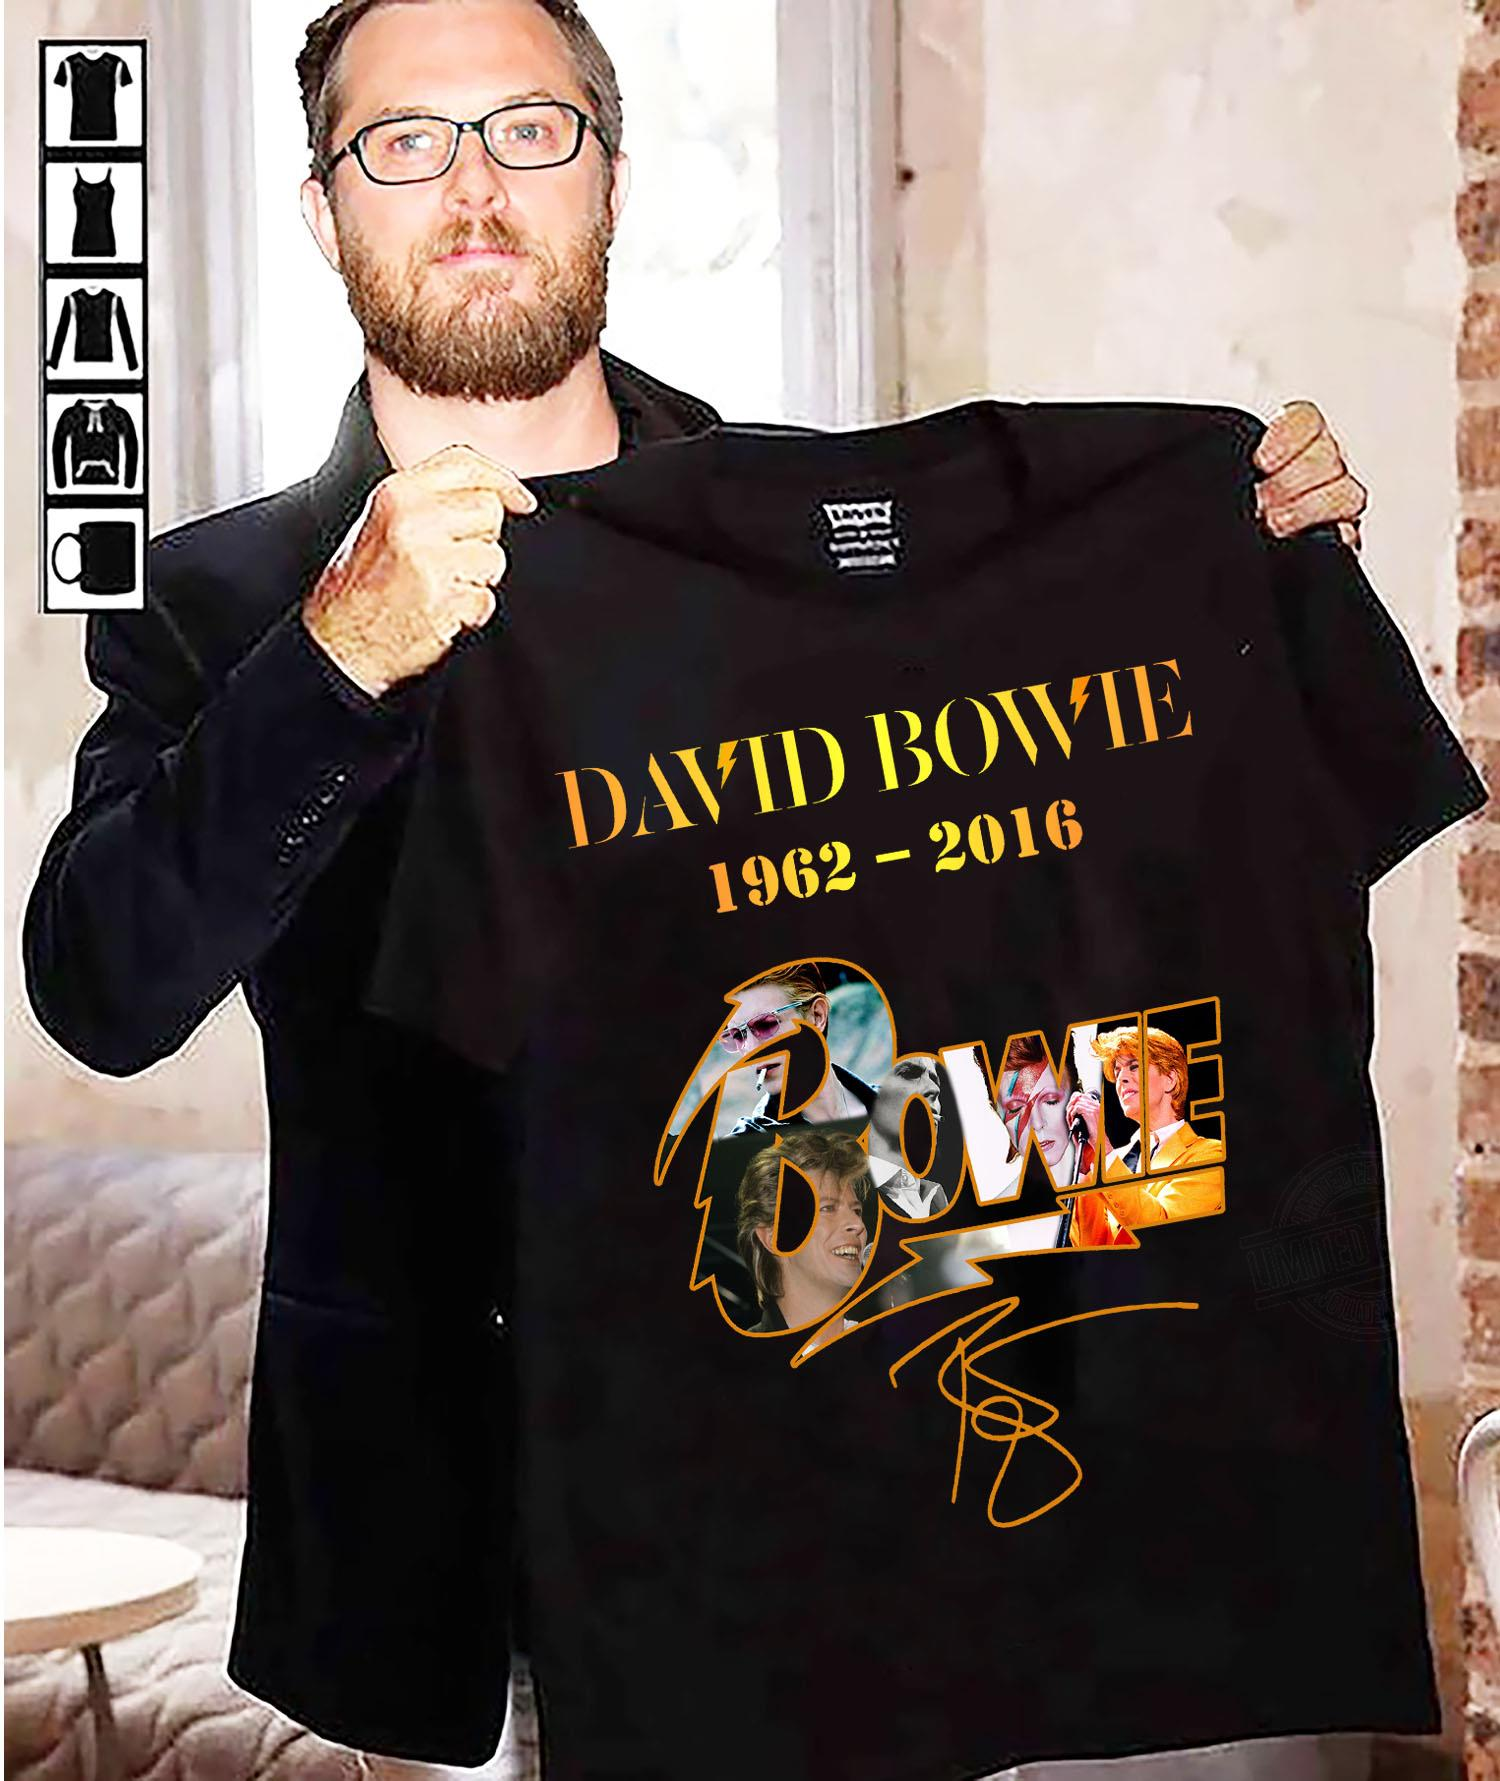 David Bowie 1962 - 2016 And Signatures Shirt